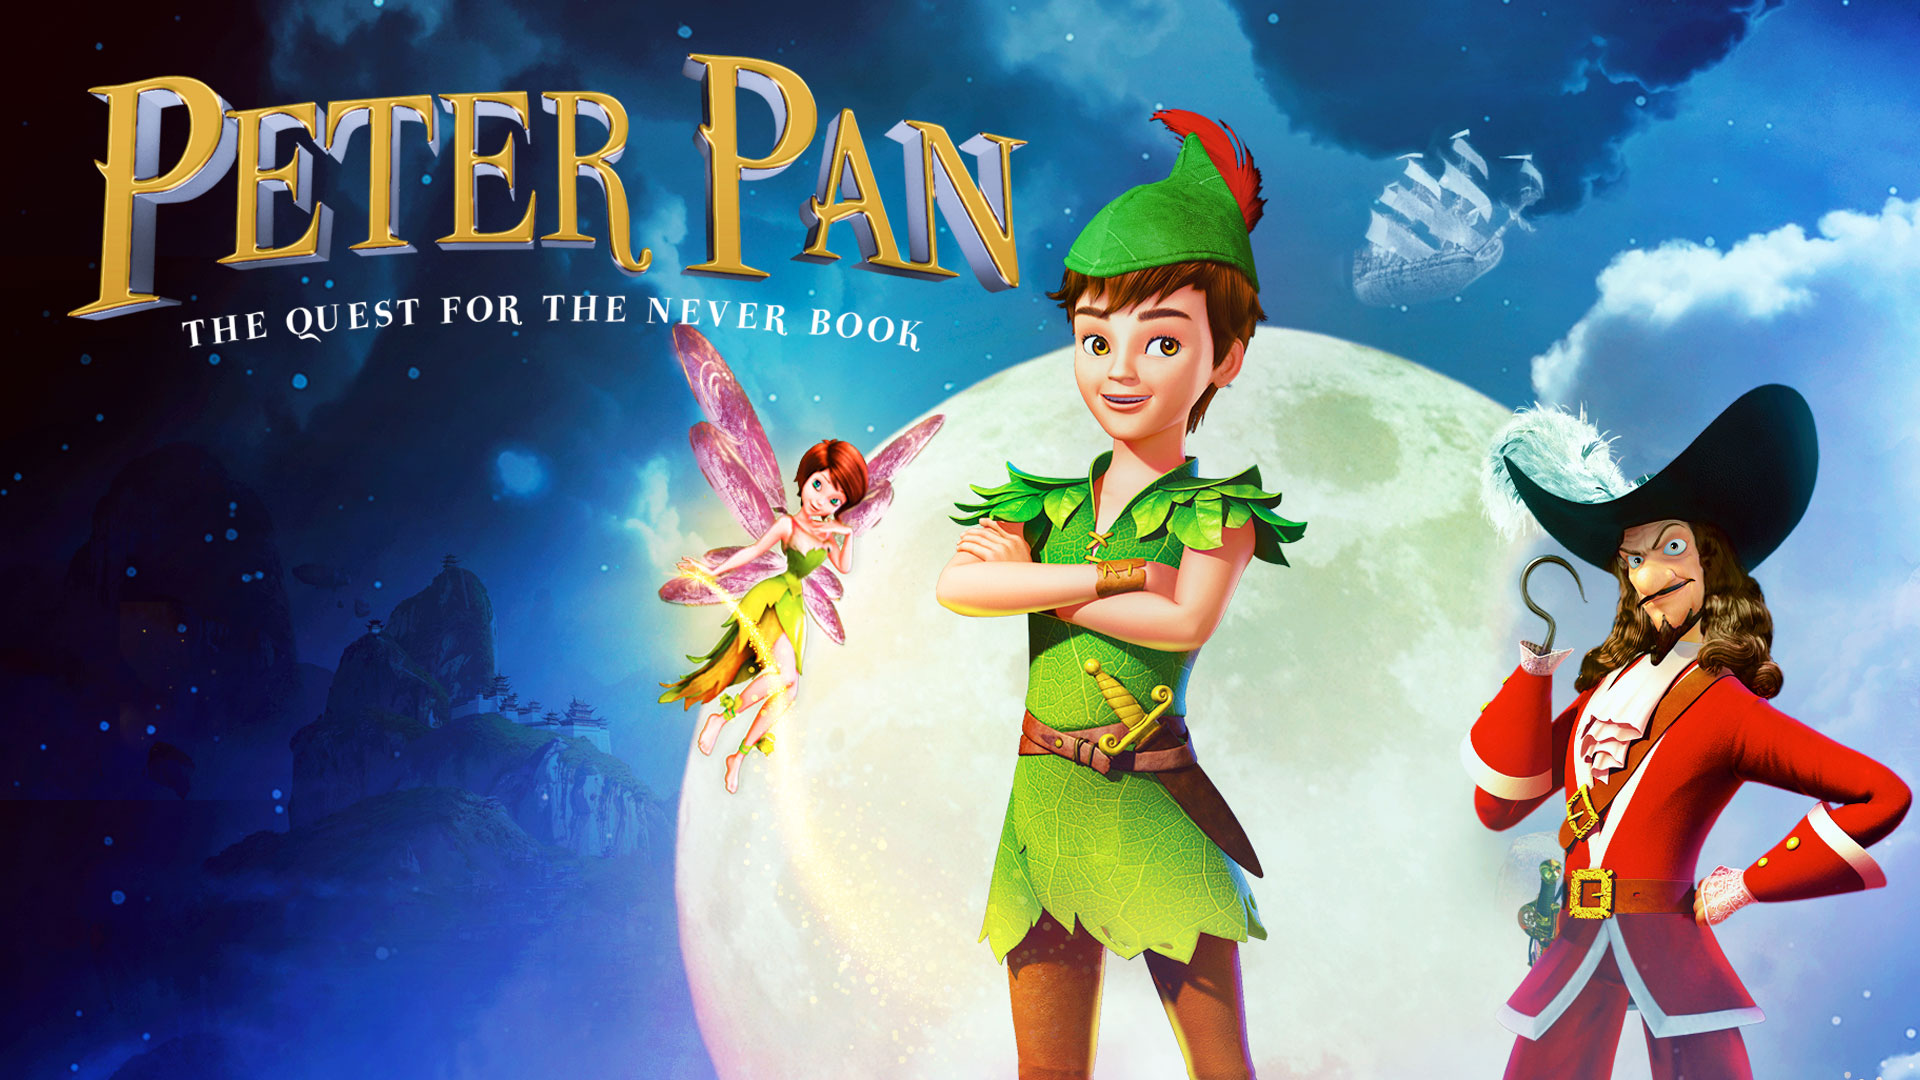 Peter Pan: The Quest for the Never Book on Amazon Prime Instant Video UK